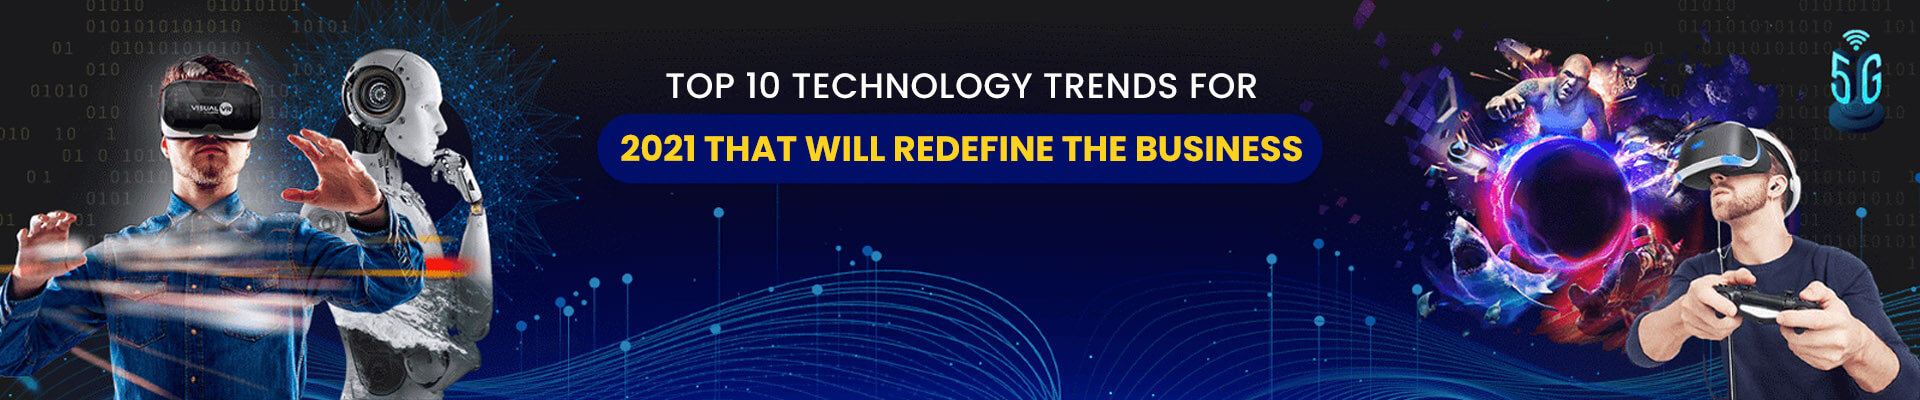 Top 10 Technology Trends For 2021 That Will Redefine The Business